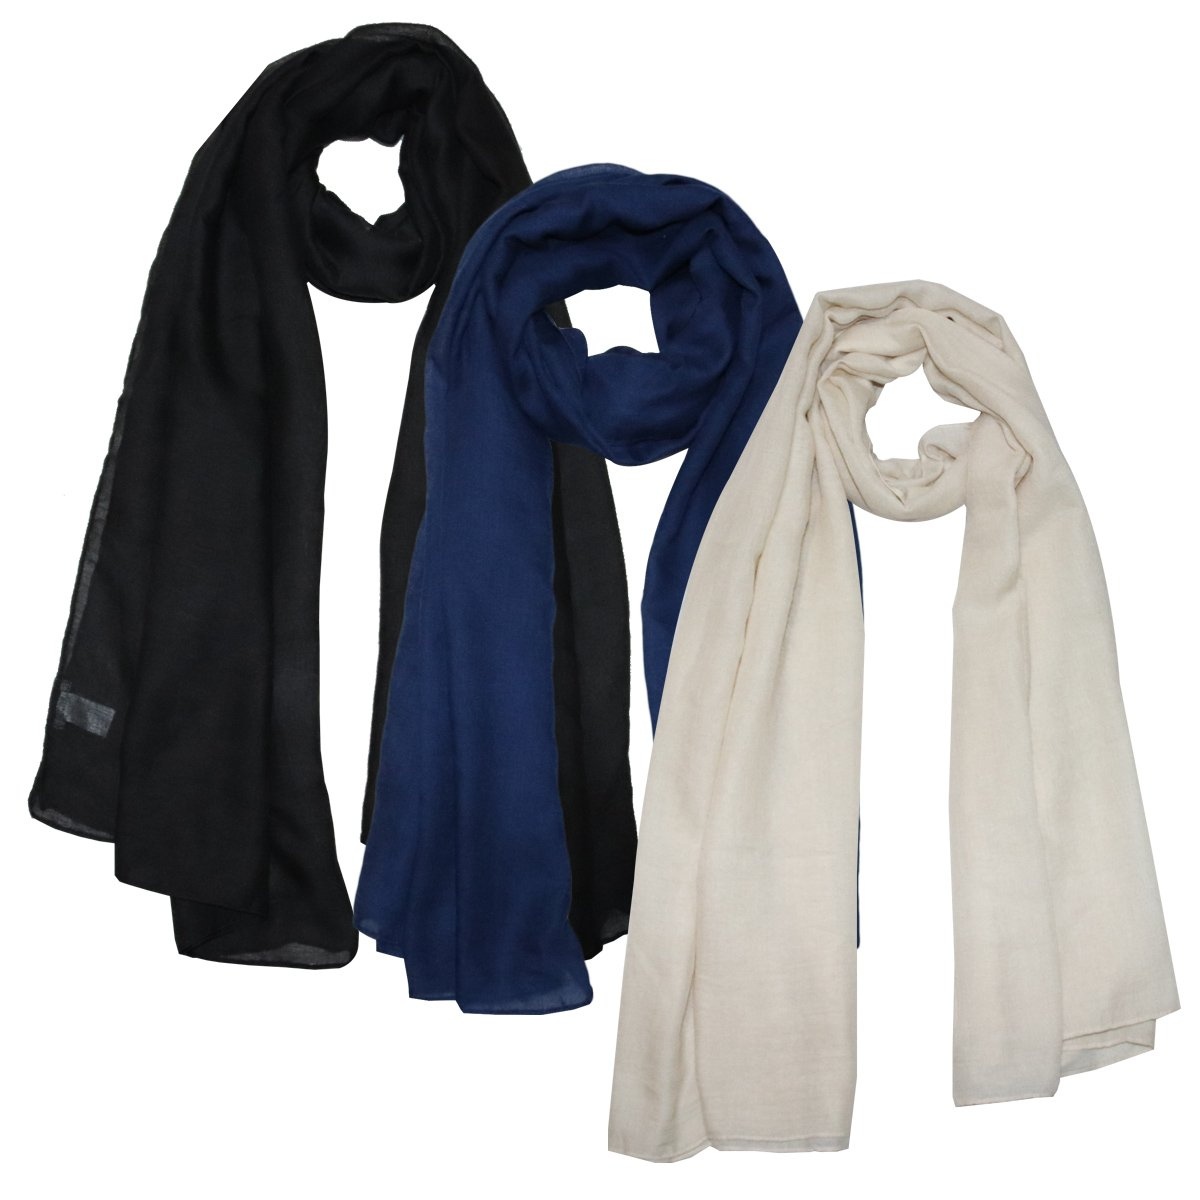 Same Pattern Different Quality 2018 New Developed Material 3 Packs Super Soft Lightweight Plain Oblong Scarf For Women Wear As Beach Cover Up Wrap (L-01)